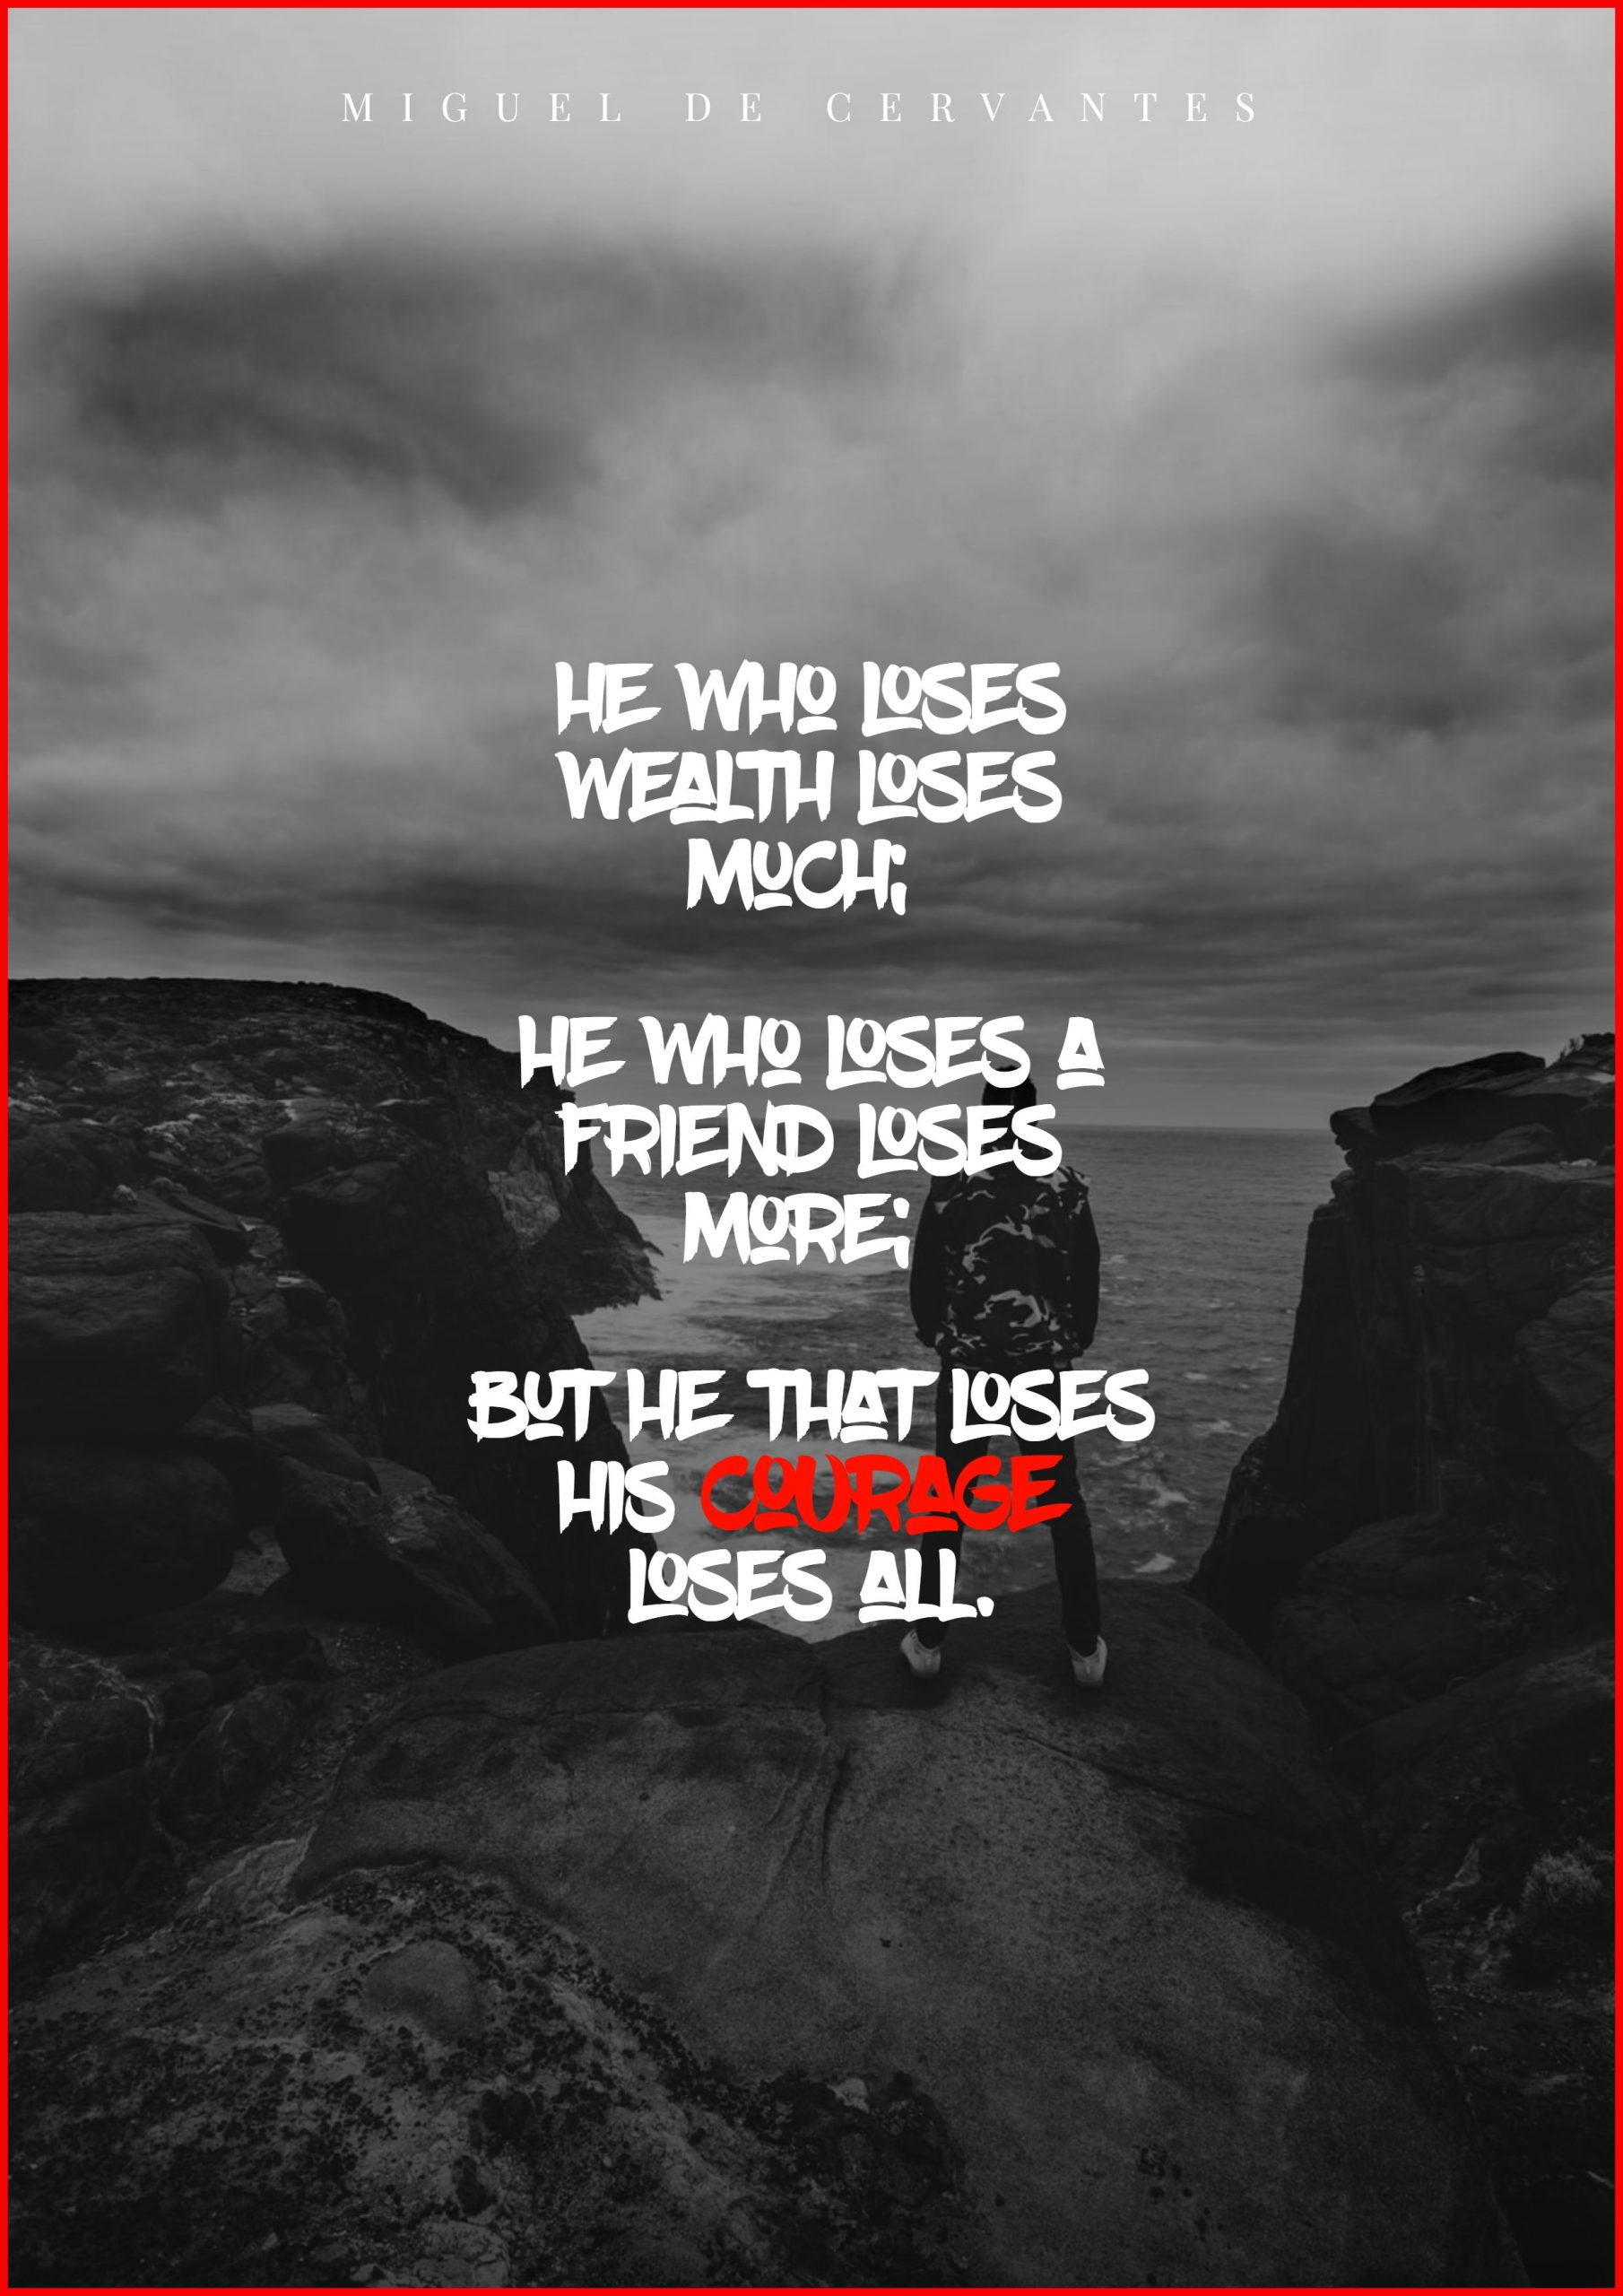 Quotes image of He who loses wealth loses much; he who loses a friend loses more; but he that loses his courage loses all.